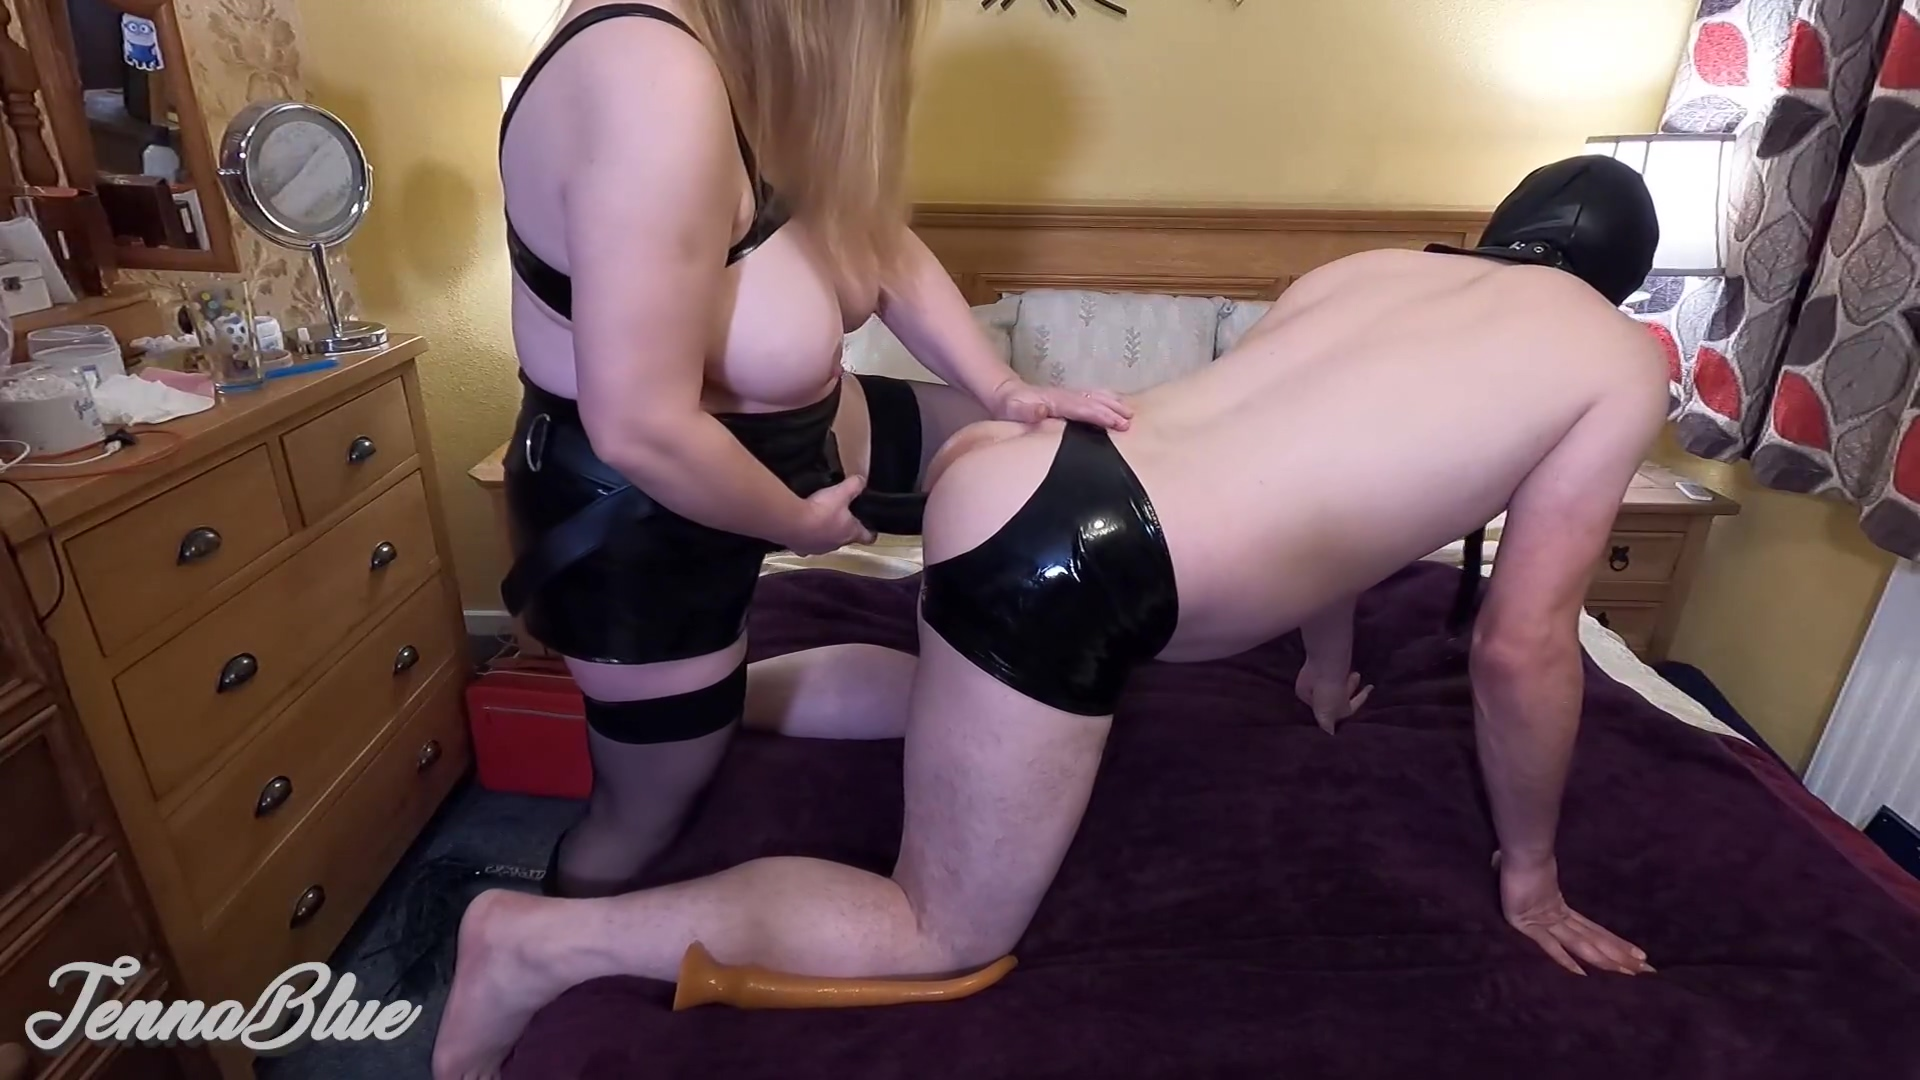 Amateur Bbw Wife Loves Pegging Husband In The Ass With A Big Strapon Until He Cums